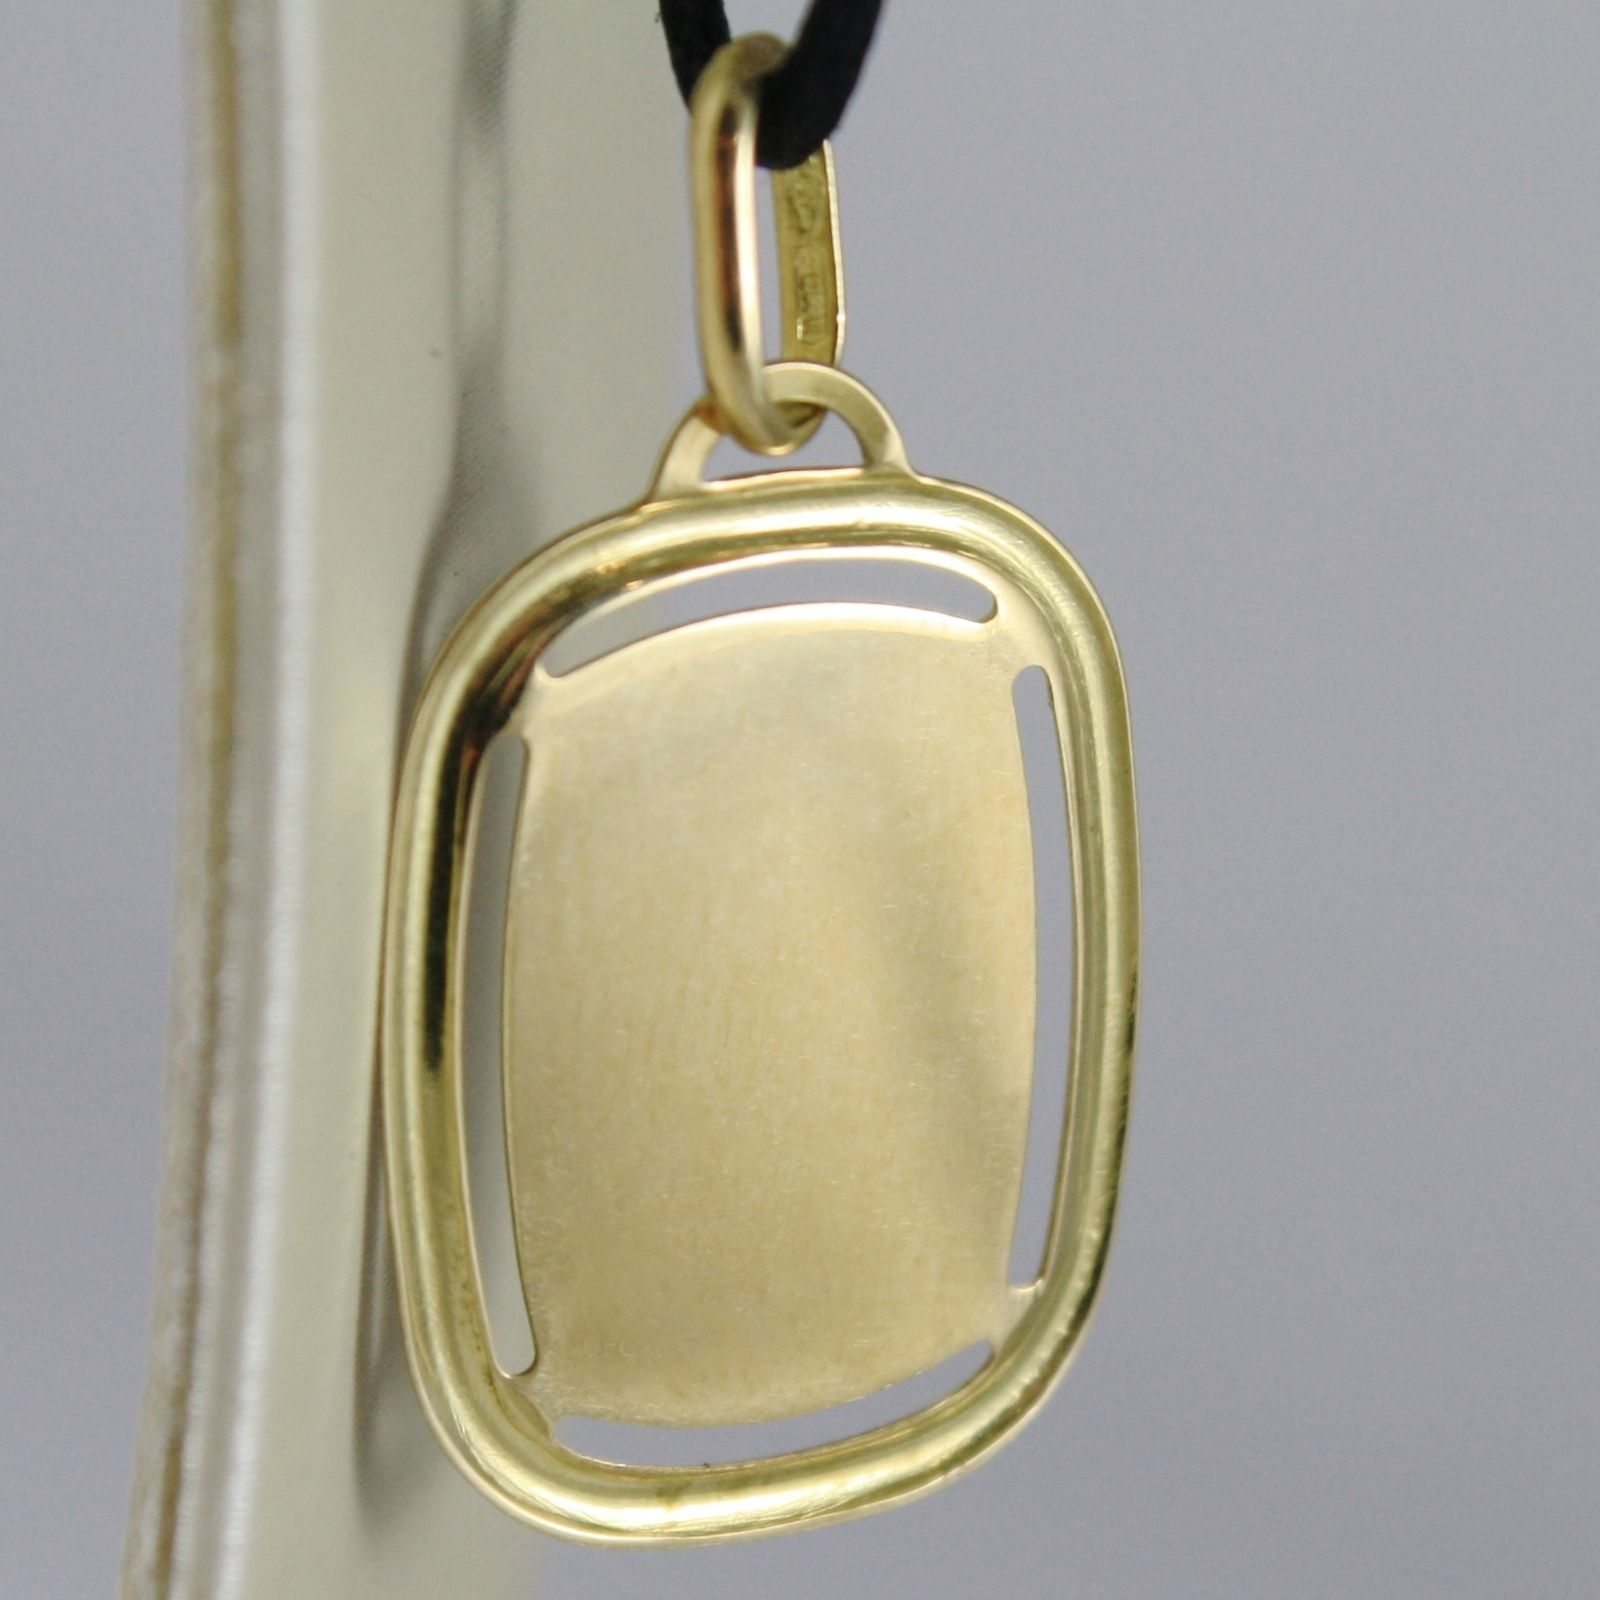 SOLID 18K YELLOW GOLD AQUARIUS ZODIAC SIGN MEDAL PENDANT ZODIACAL MADE IN ITALY